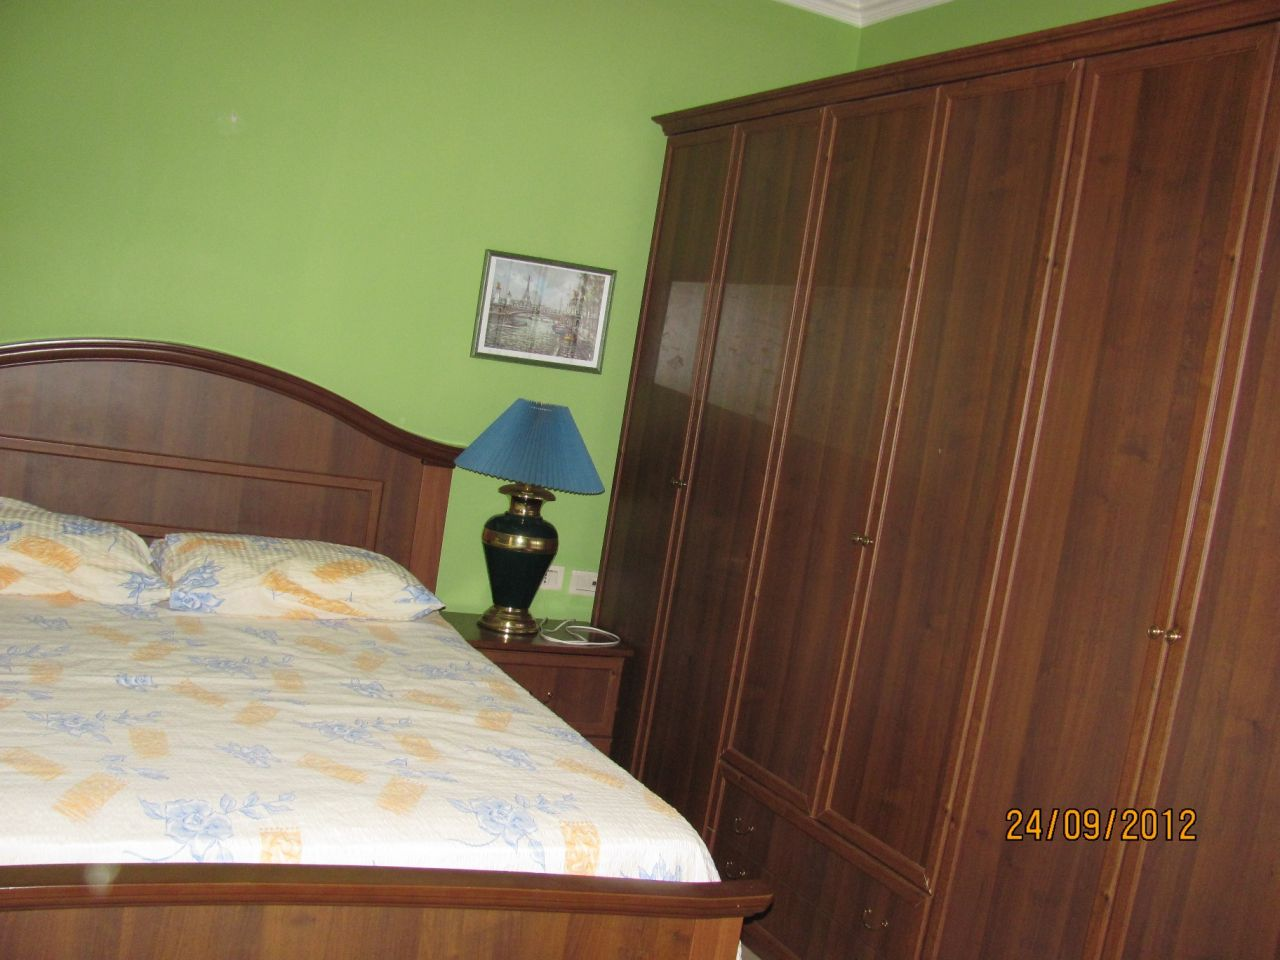 this is an apartment for sale in tirana, in a nice and quite zone. it has 2 bedrooms and a completed kitchen